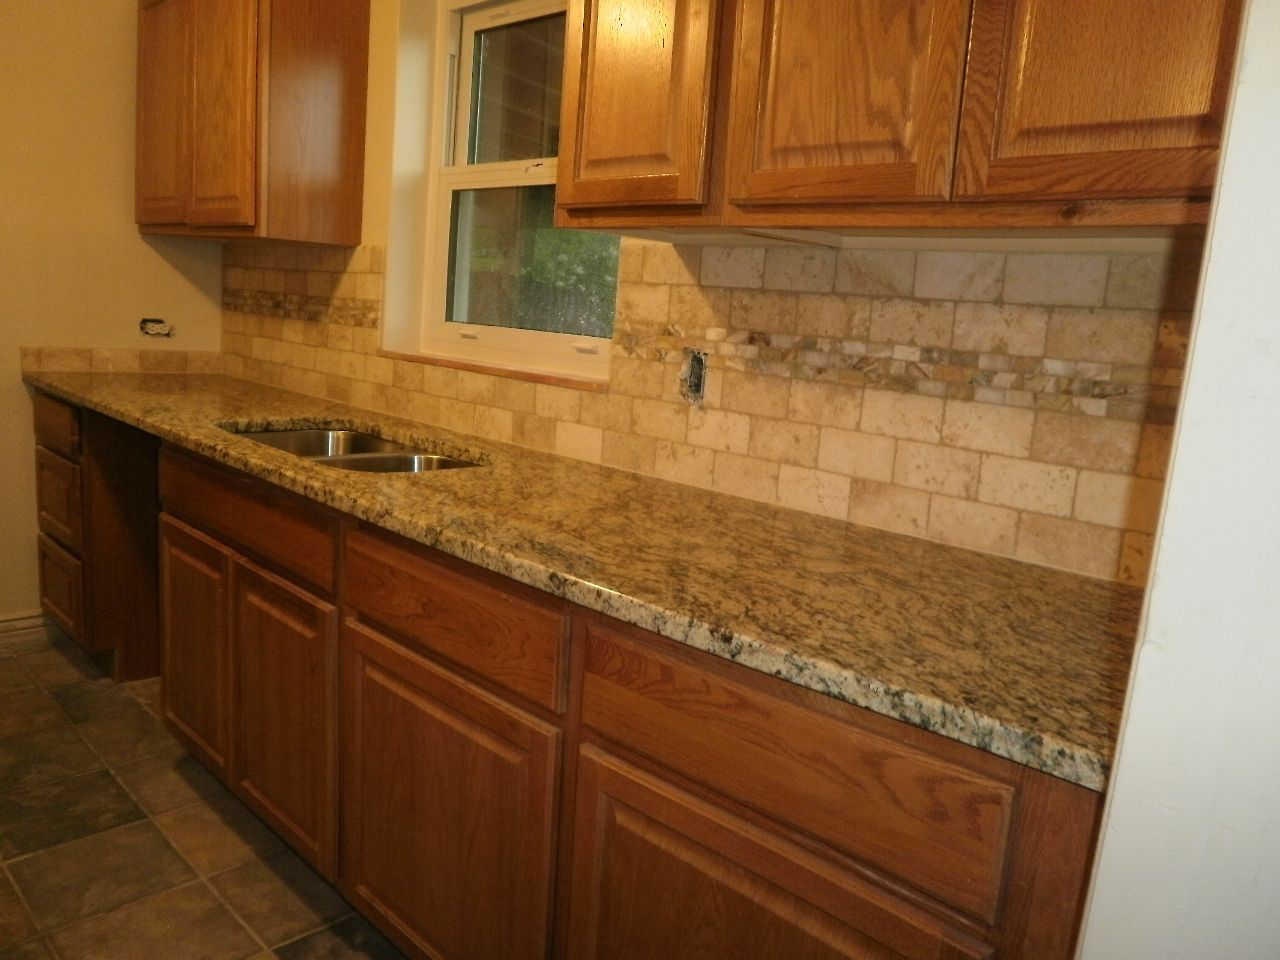 Kitchen Backsplash Designs kitchen backsplash ideas | granite countertops backsplash ideas